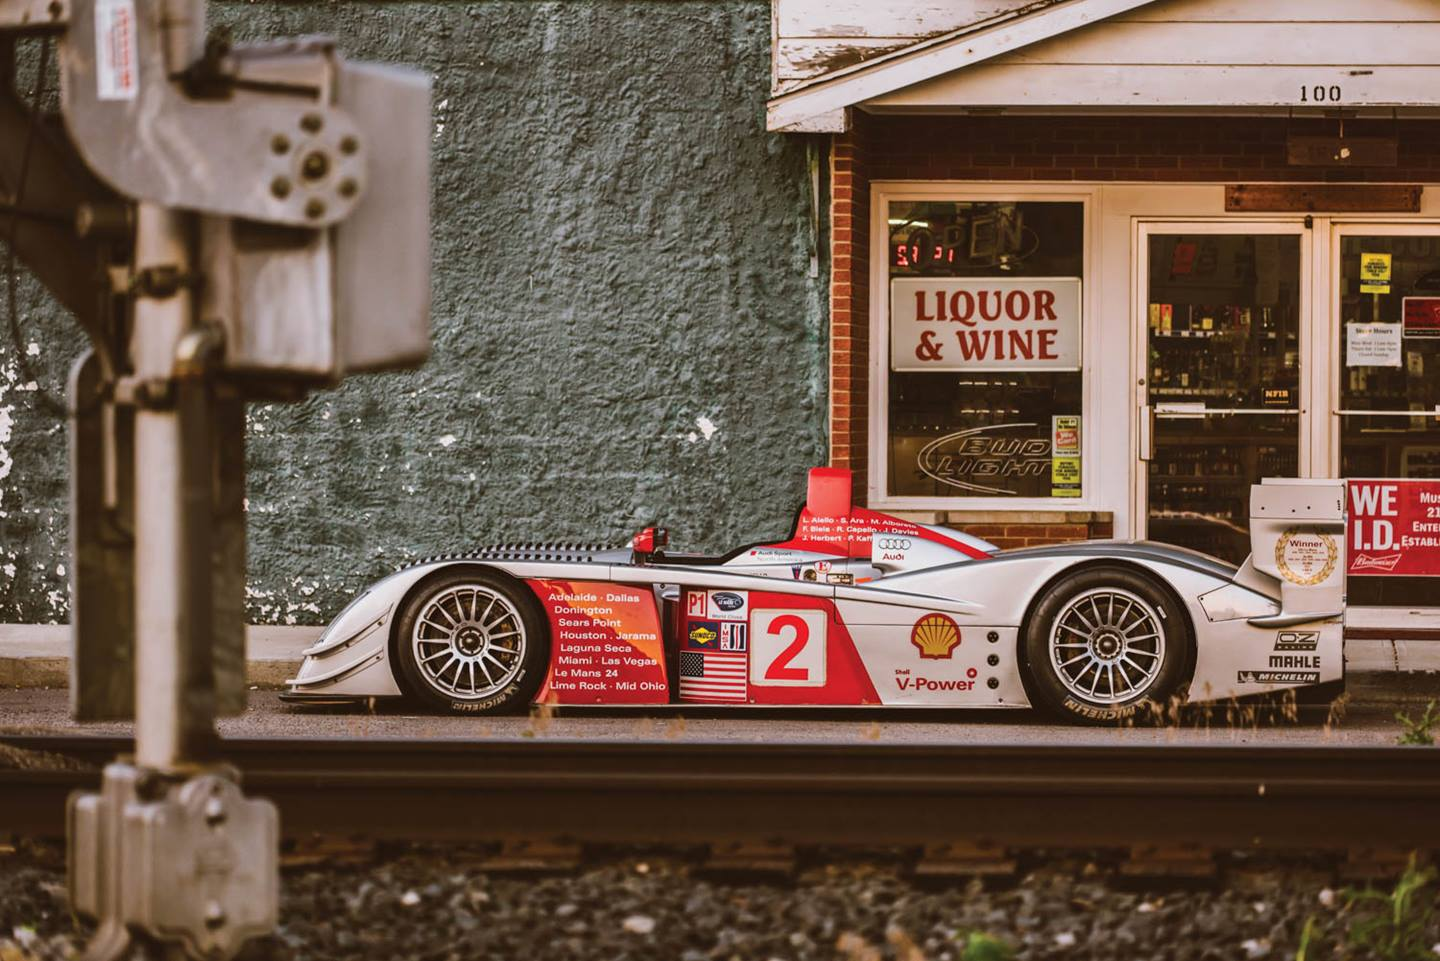 This small-town liquor store is a long way from home for this Audi R8 that finished third at Le Mans in 2005, helping privateer team Champion Racing become the first American squad to win the race since Ford in 1967.